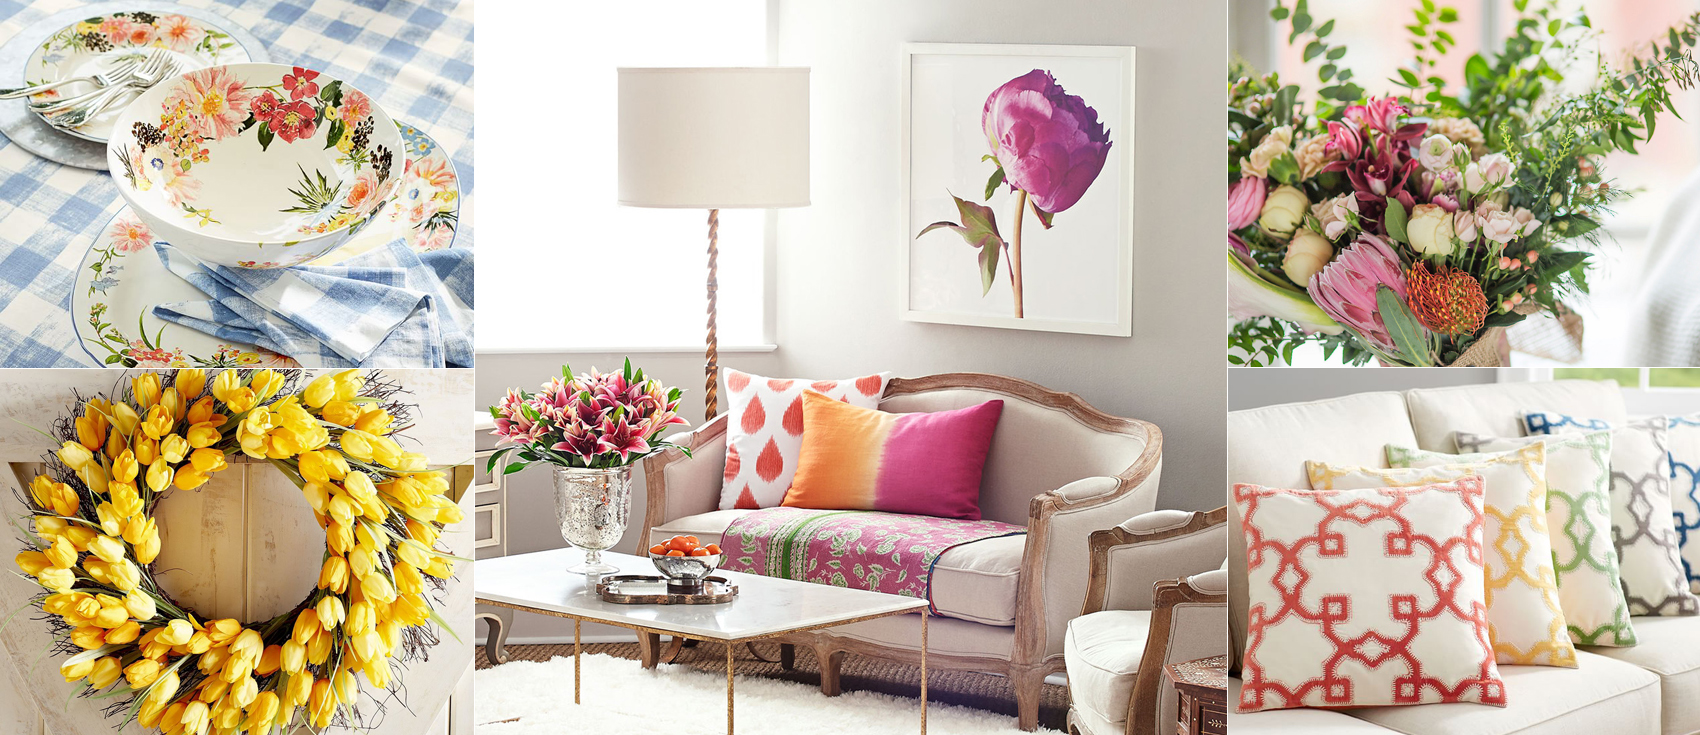 Spring Decor | Spring Decorating Ideas